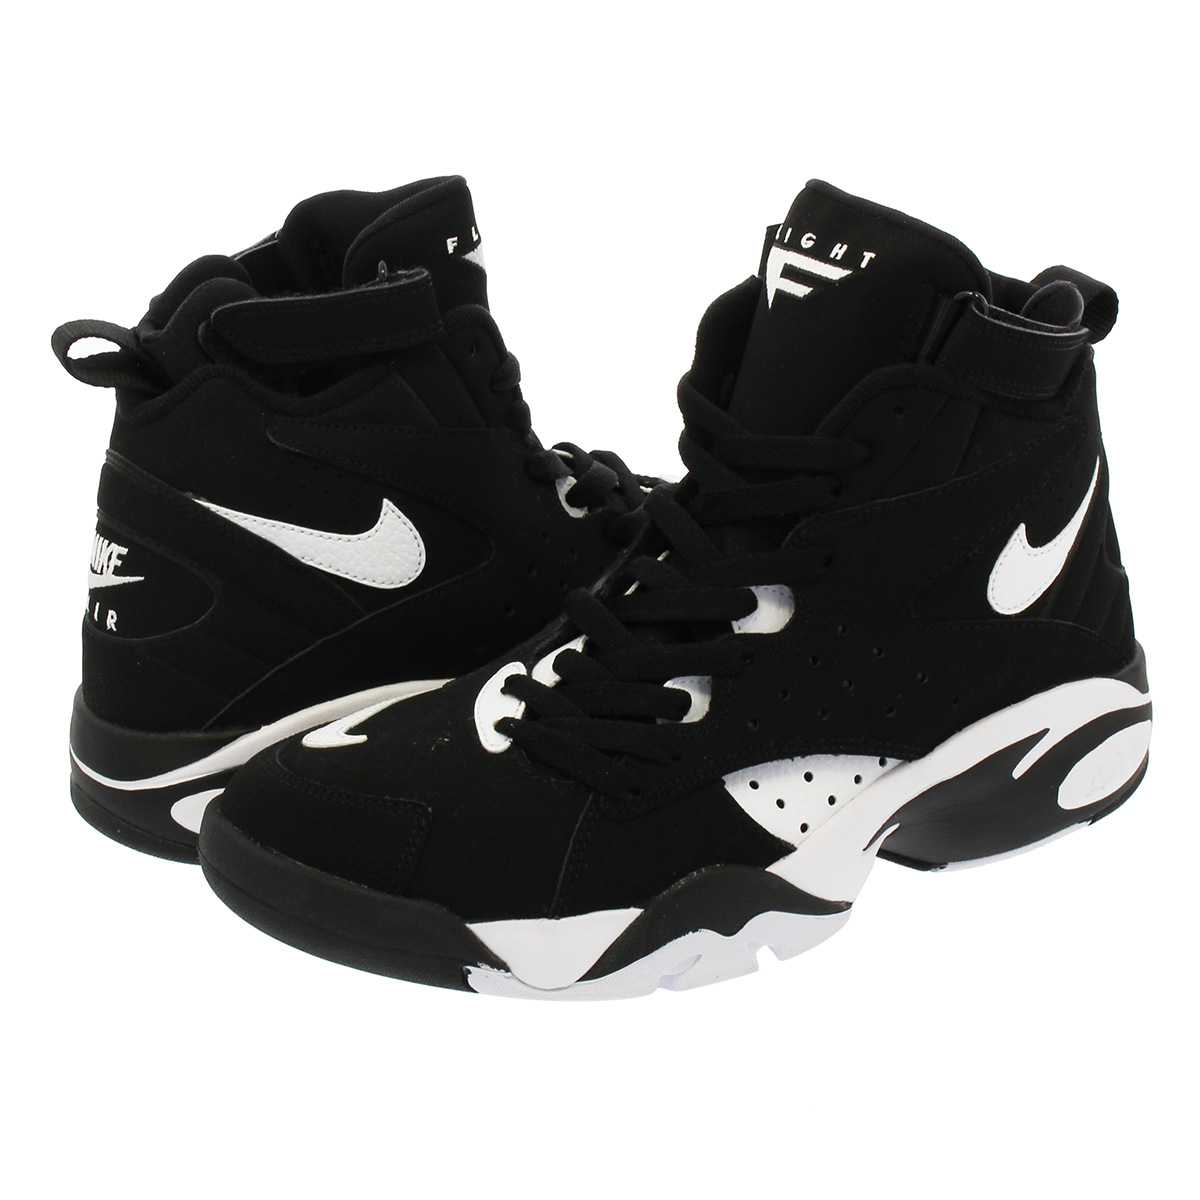 new product 8817a 7704d NIKE AIR MAESTRO II LTD Nike air maestro 2 LTD BLACKWHITE ah8511-001